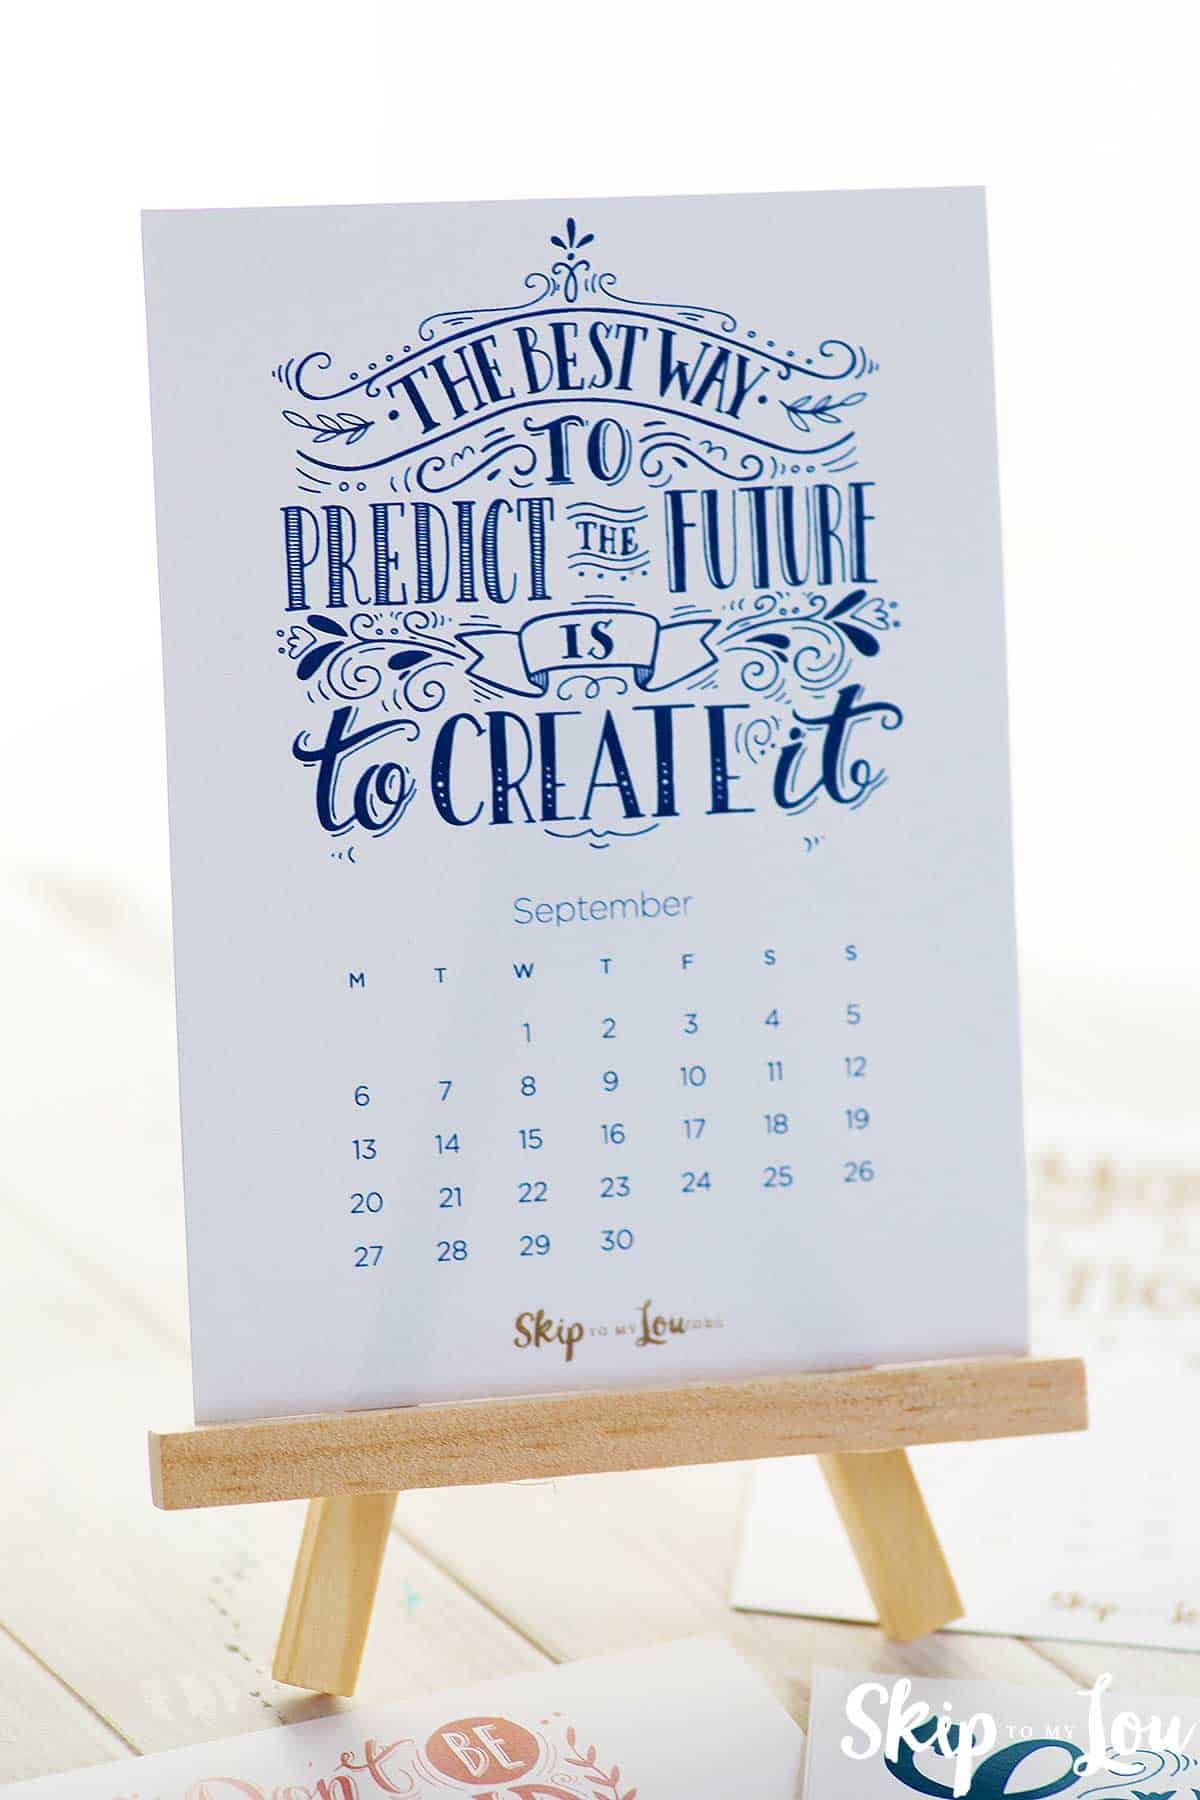 tiny printable 2021 calendar with inspirational saying the best way to predict the future is to create it, sitting on wooden easel